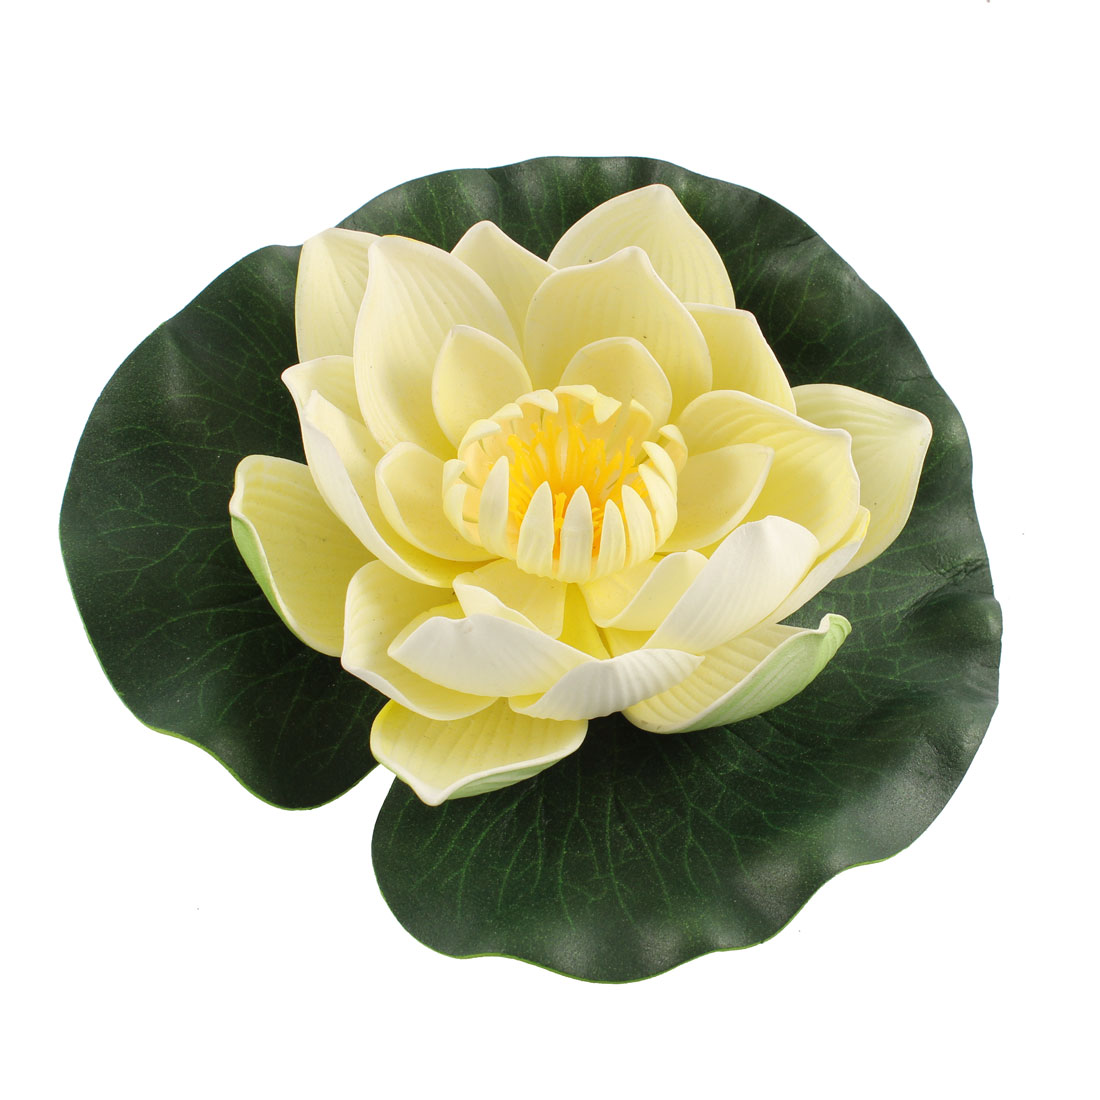 Unique Bargains Aquarium Simulation Foam Lotus Flower Aquatic Floating Plant Decor Beige Green